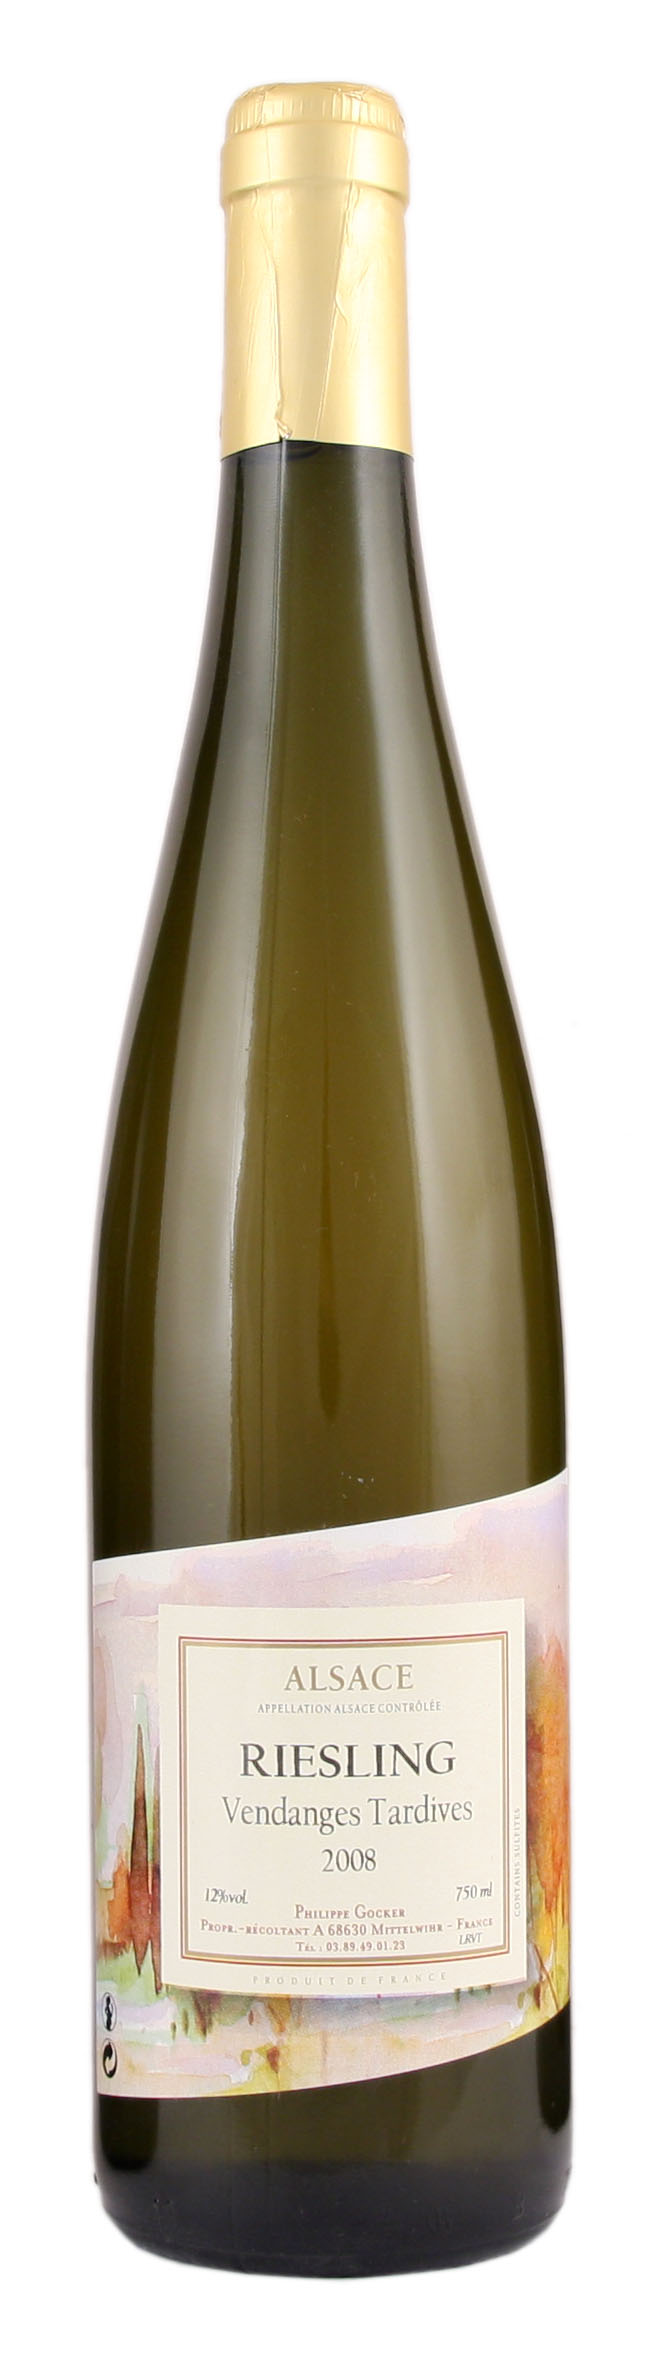 Gewurztraminer Vendages Tardives AOC